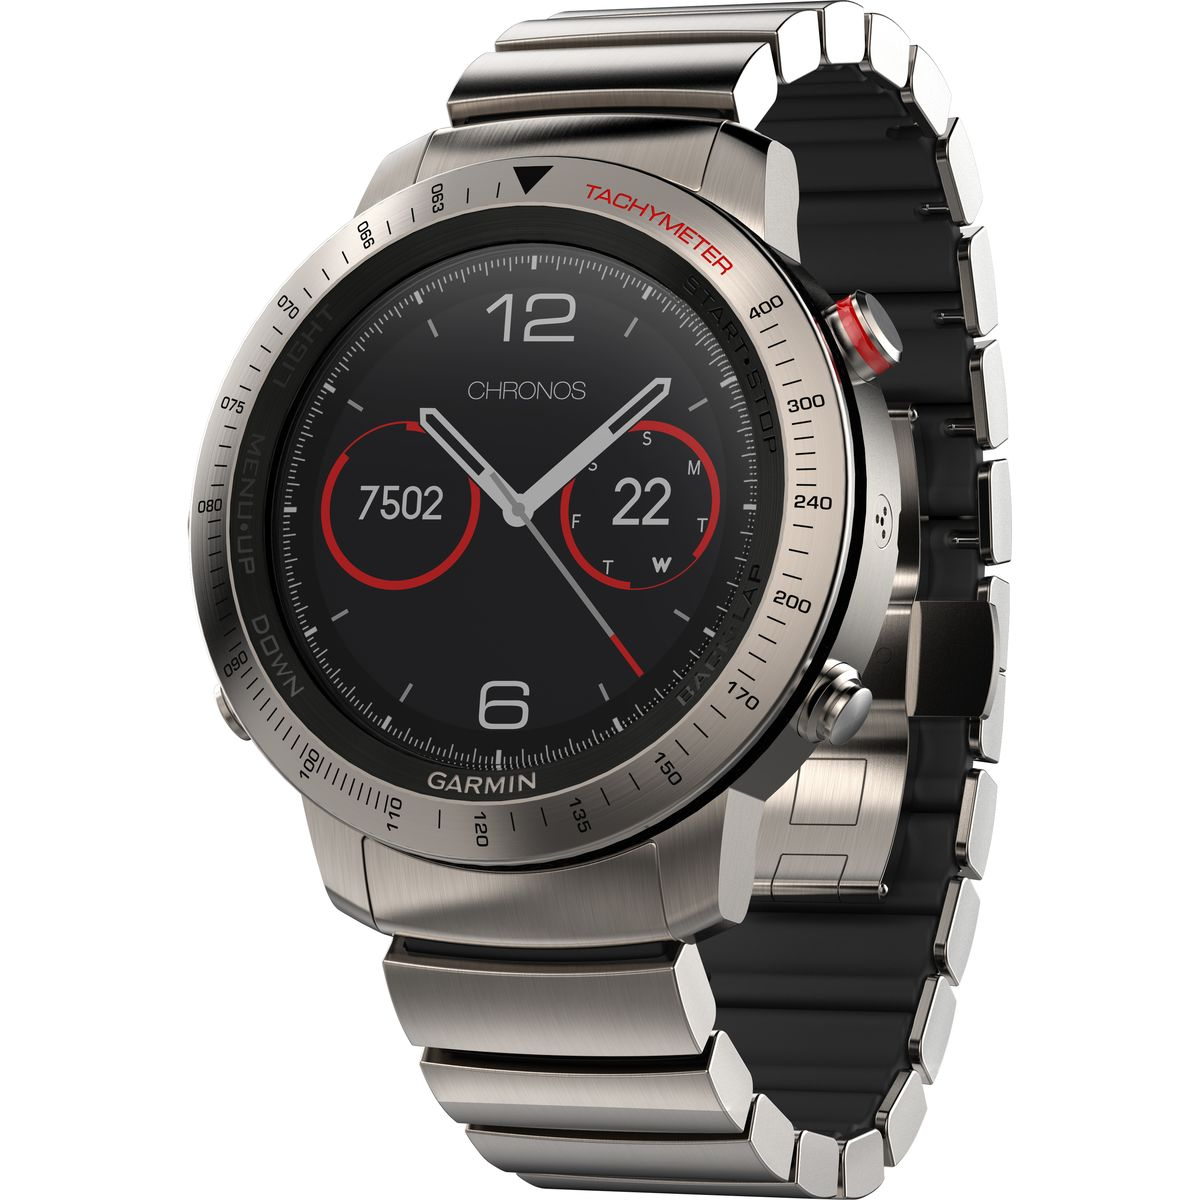 competitive watches watch tit fenix chronos titanium cyclist garmin